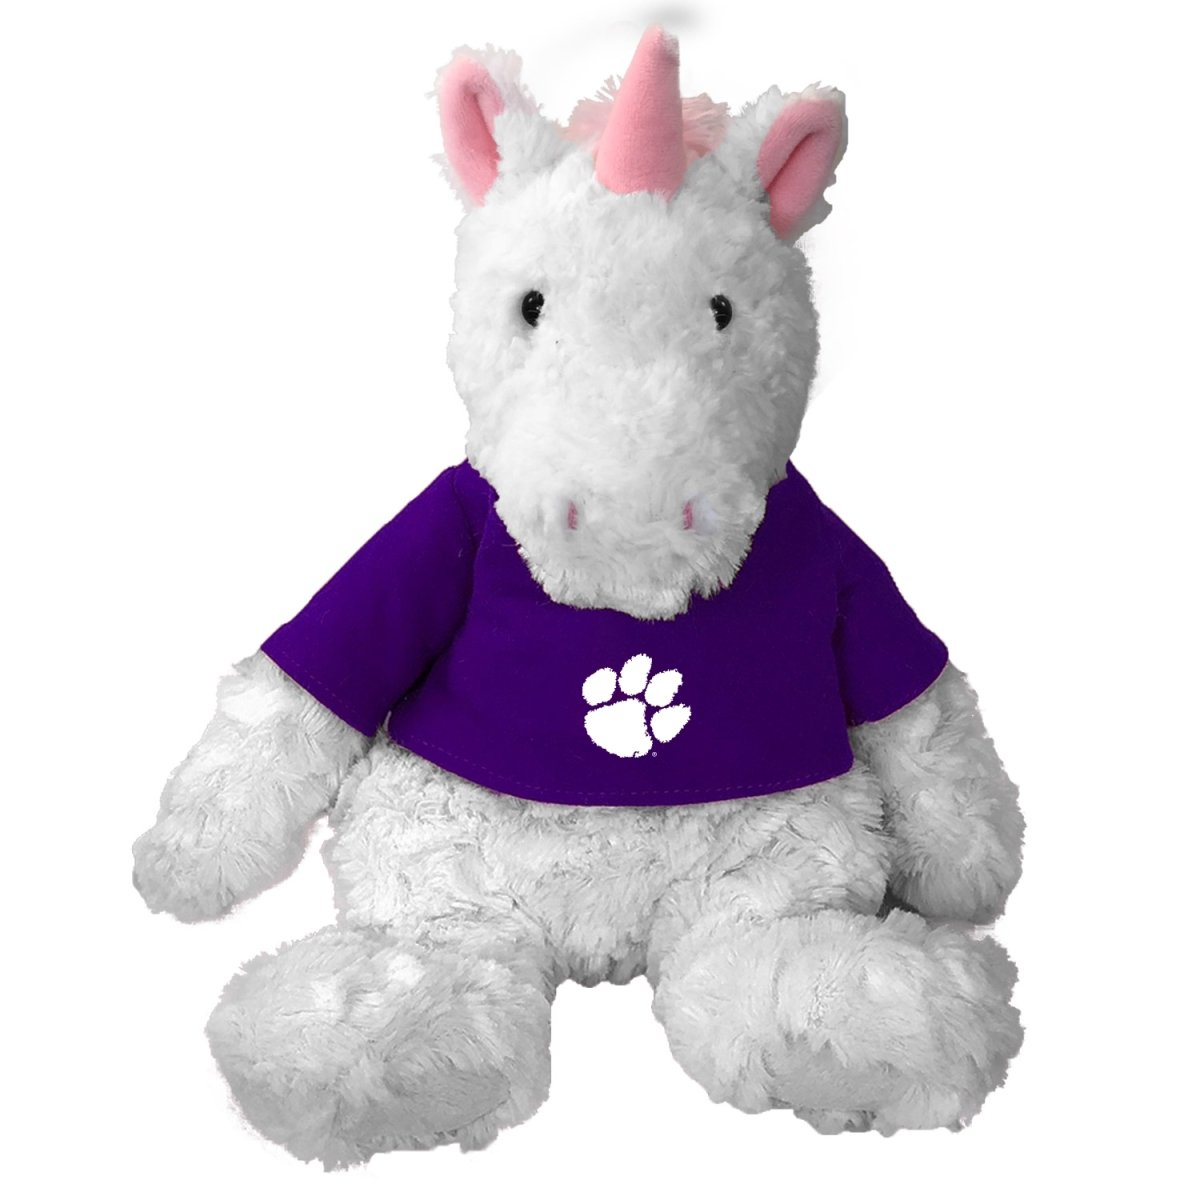 Cuddle Buddy Unicorn With Purple Shirt White Paw - Mr. Knickerbocker